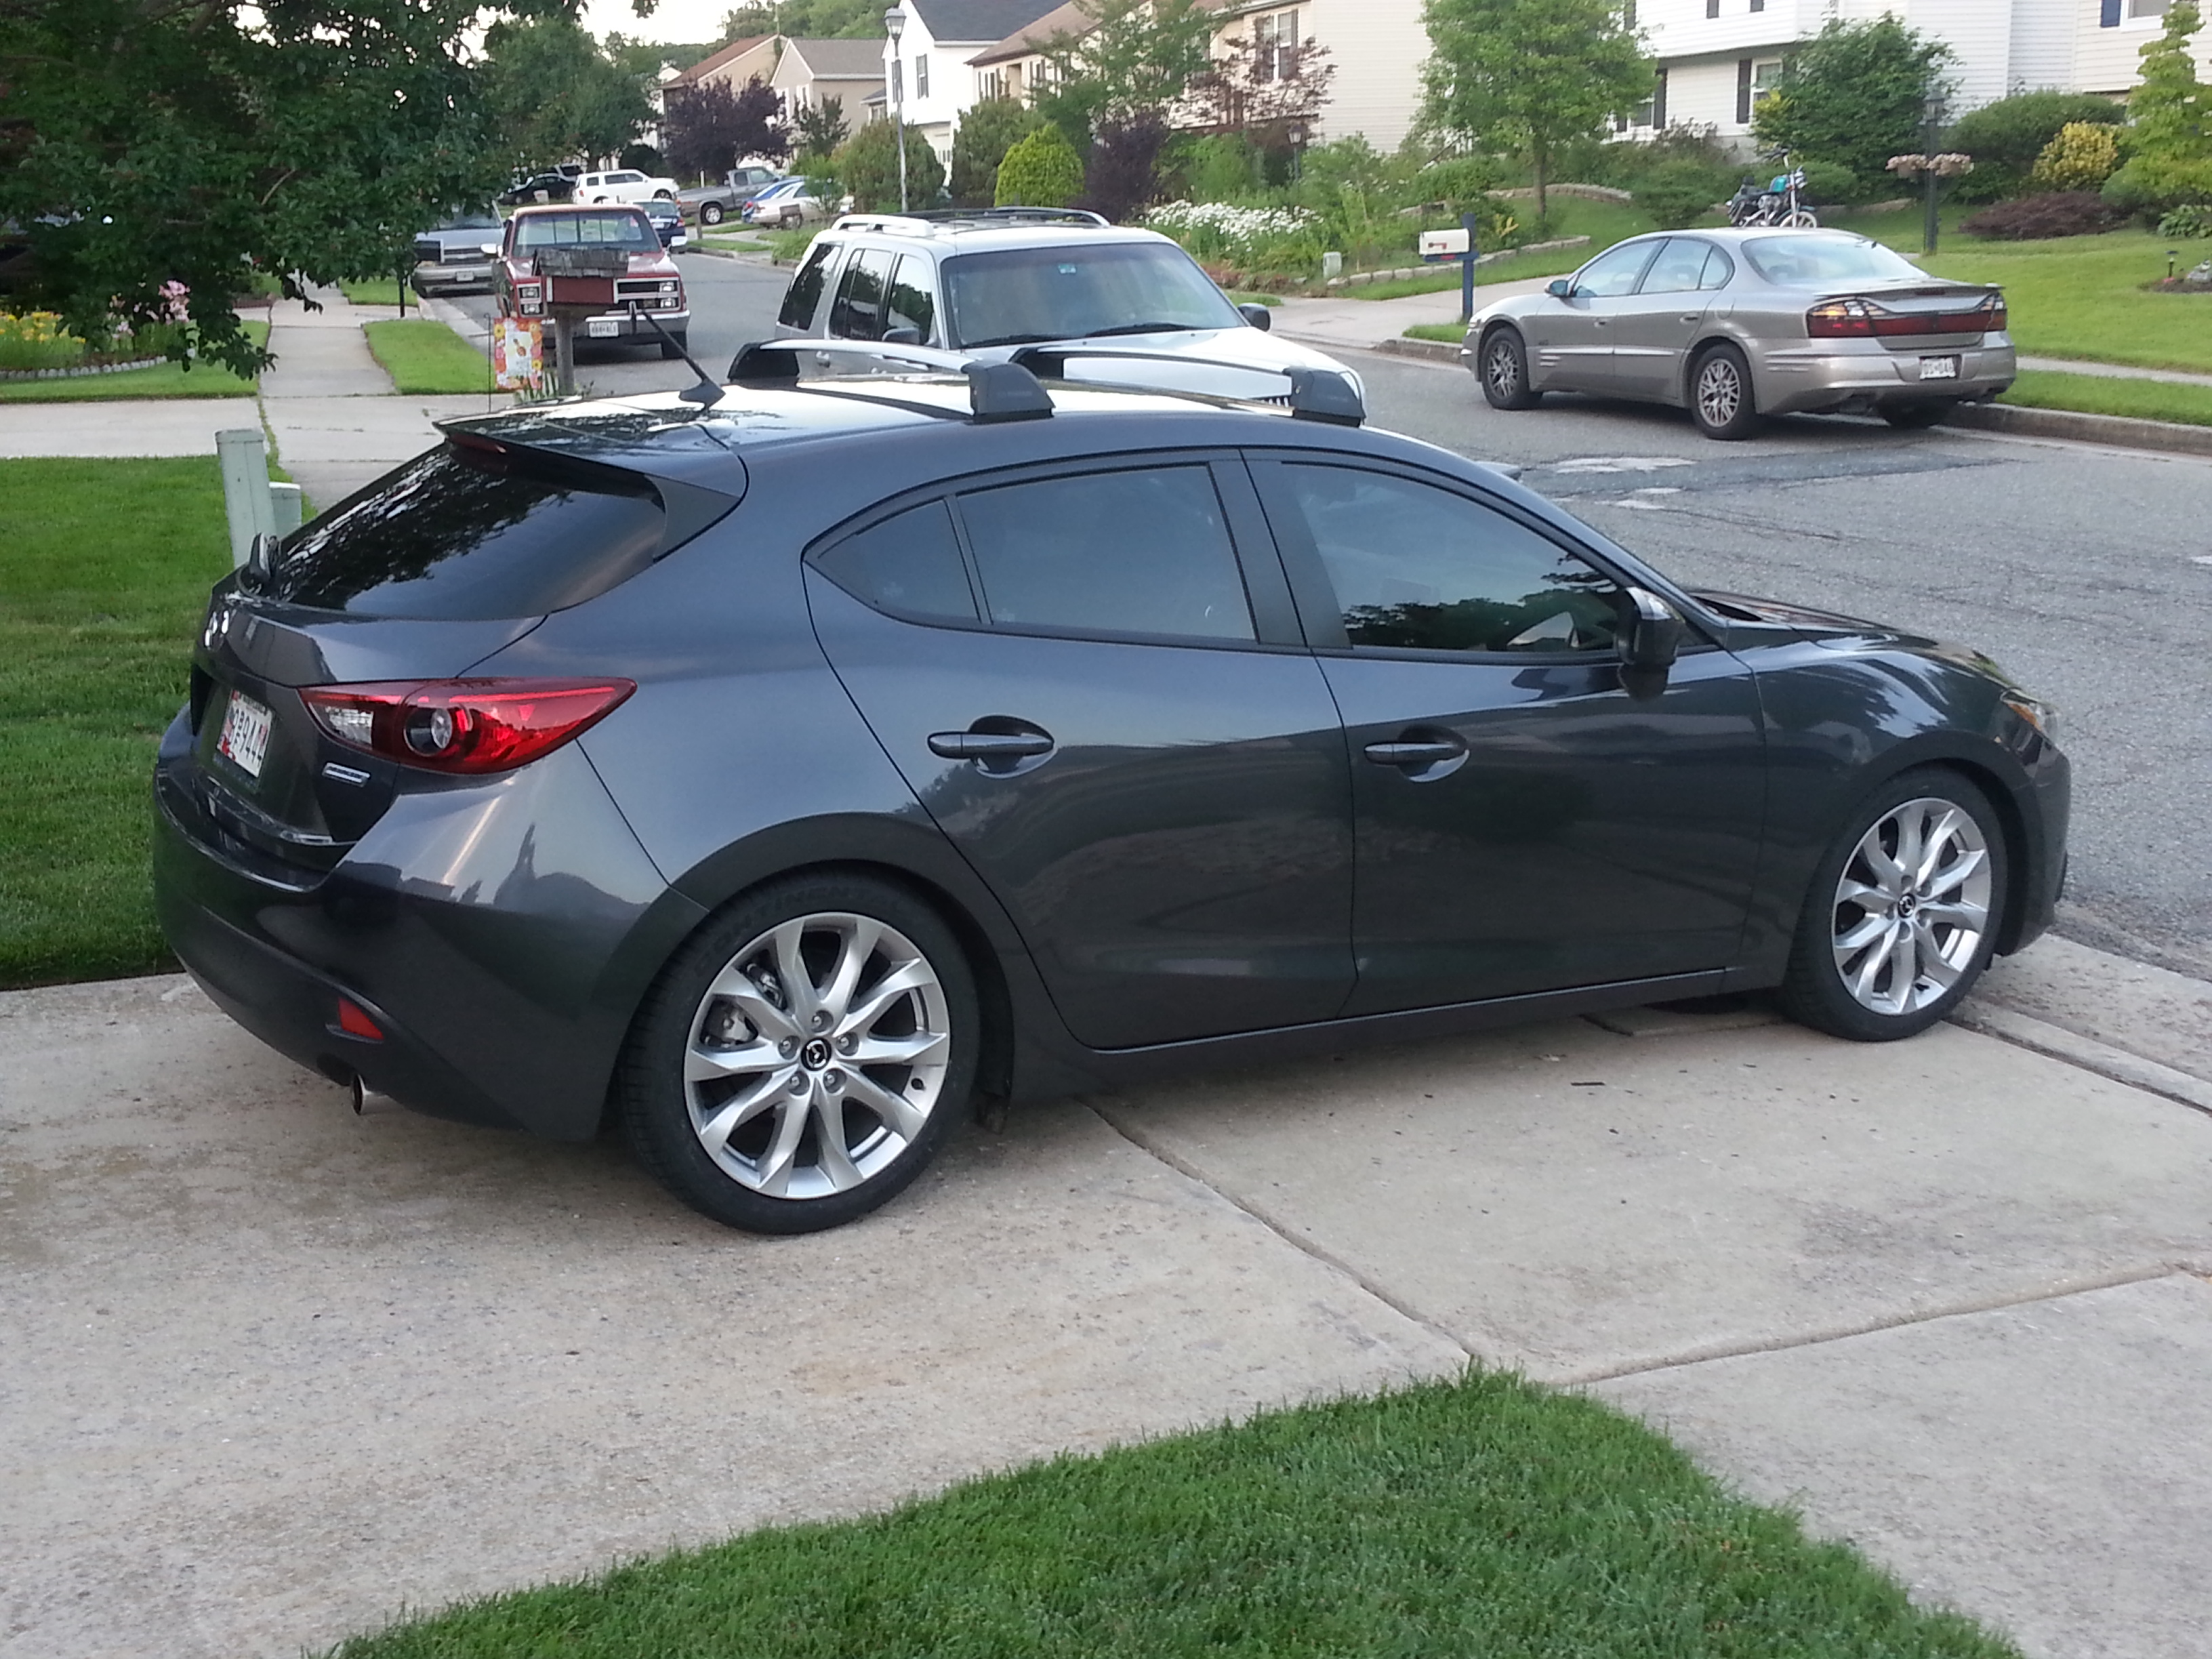 Springs and coilovers thread 2004 to 2016 mazda 3 forum and mazdaspeed 3 forums